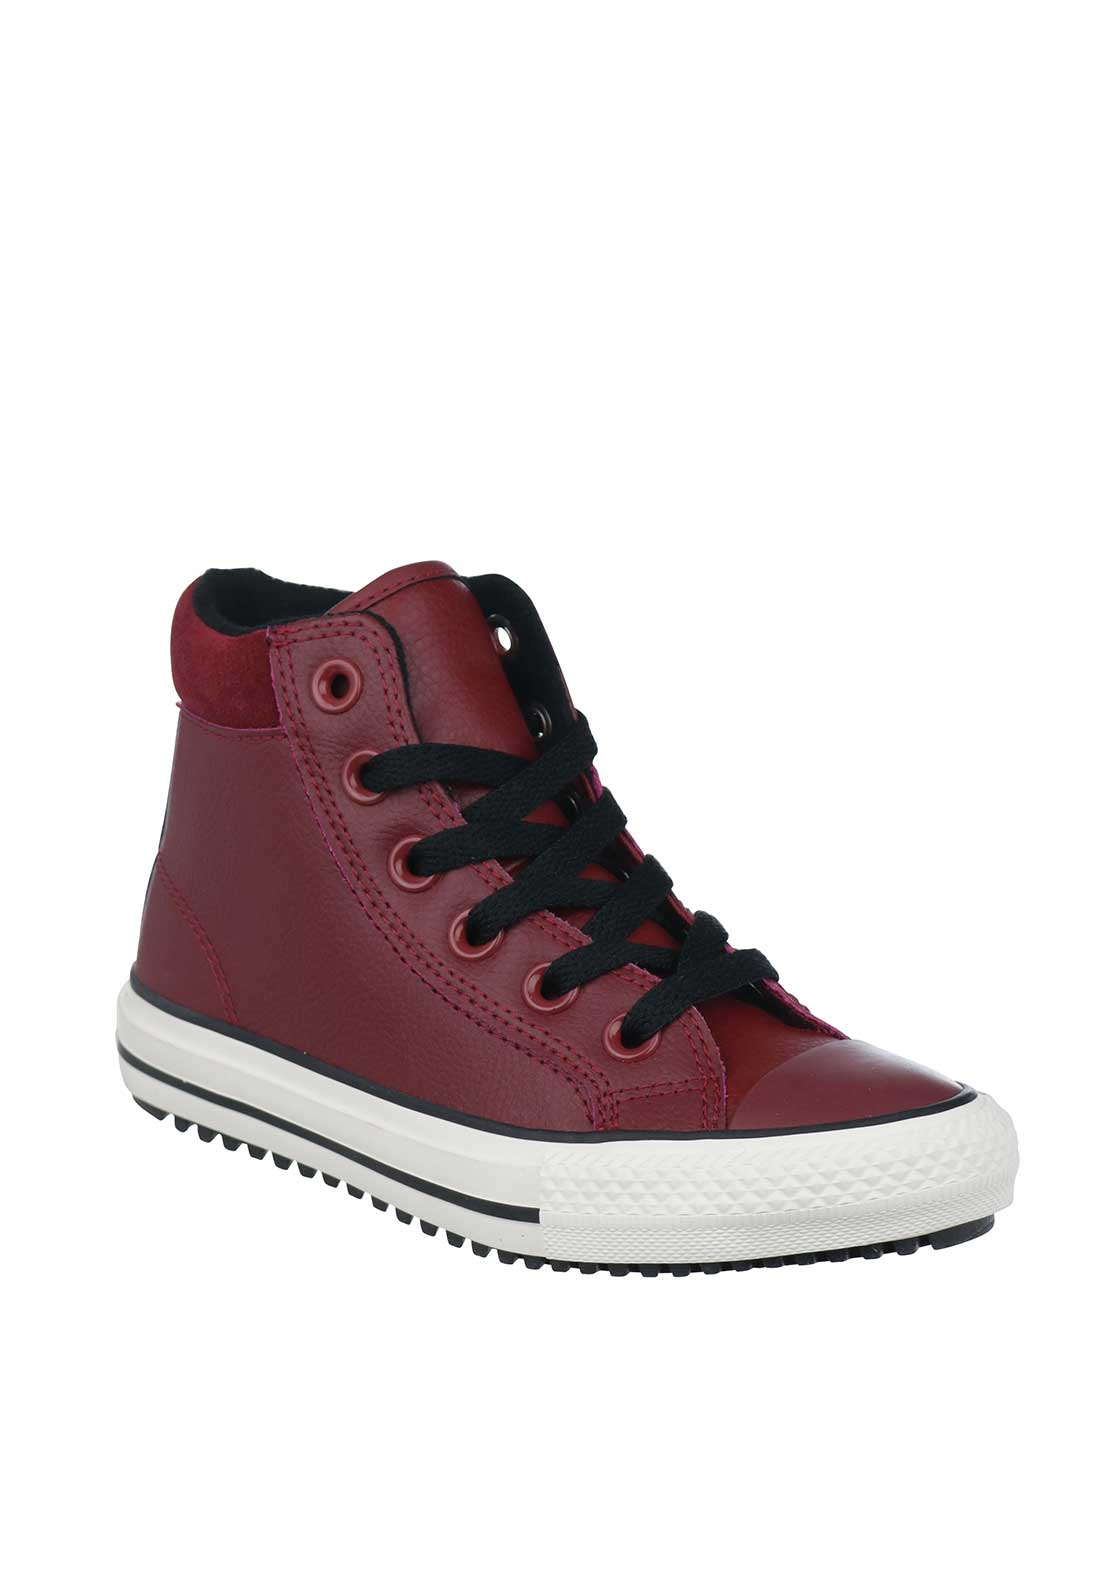 Converse Kids Chuck Taylor Hi Top Trainers, Wine